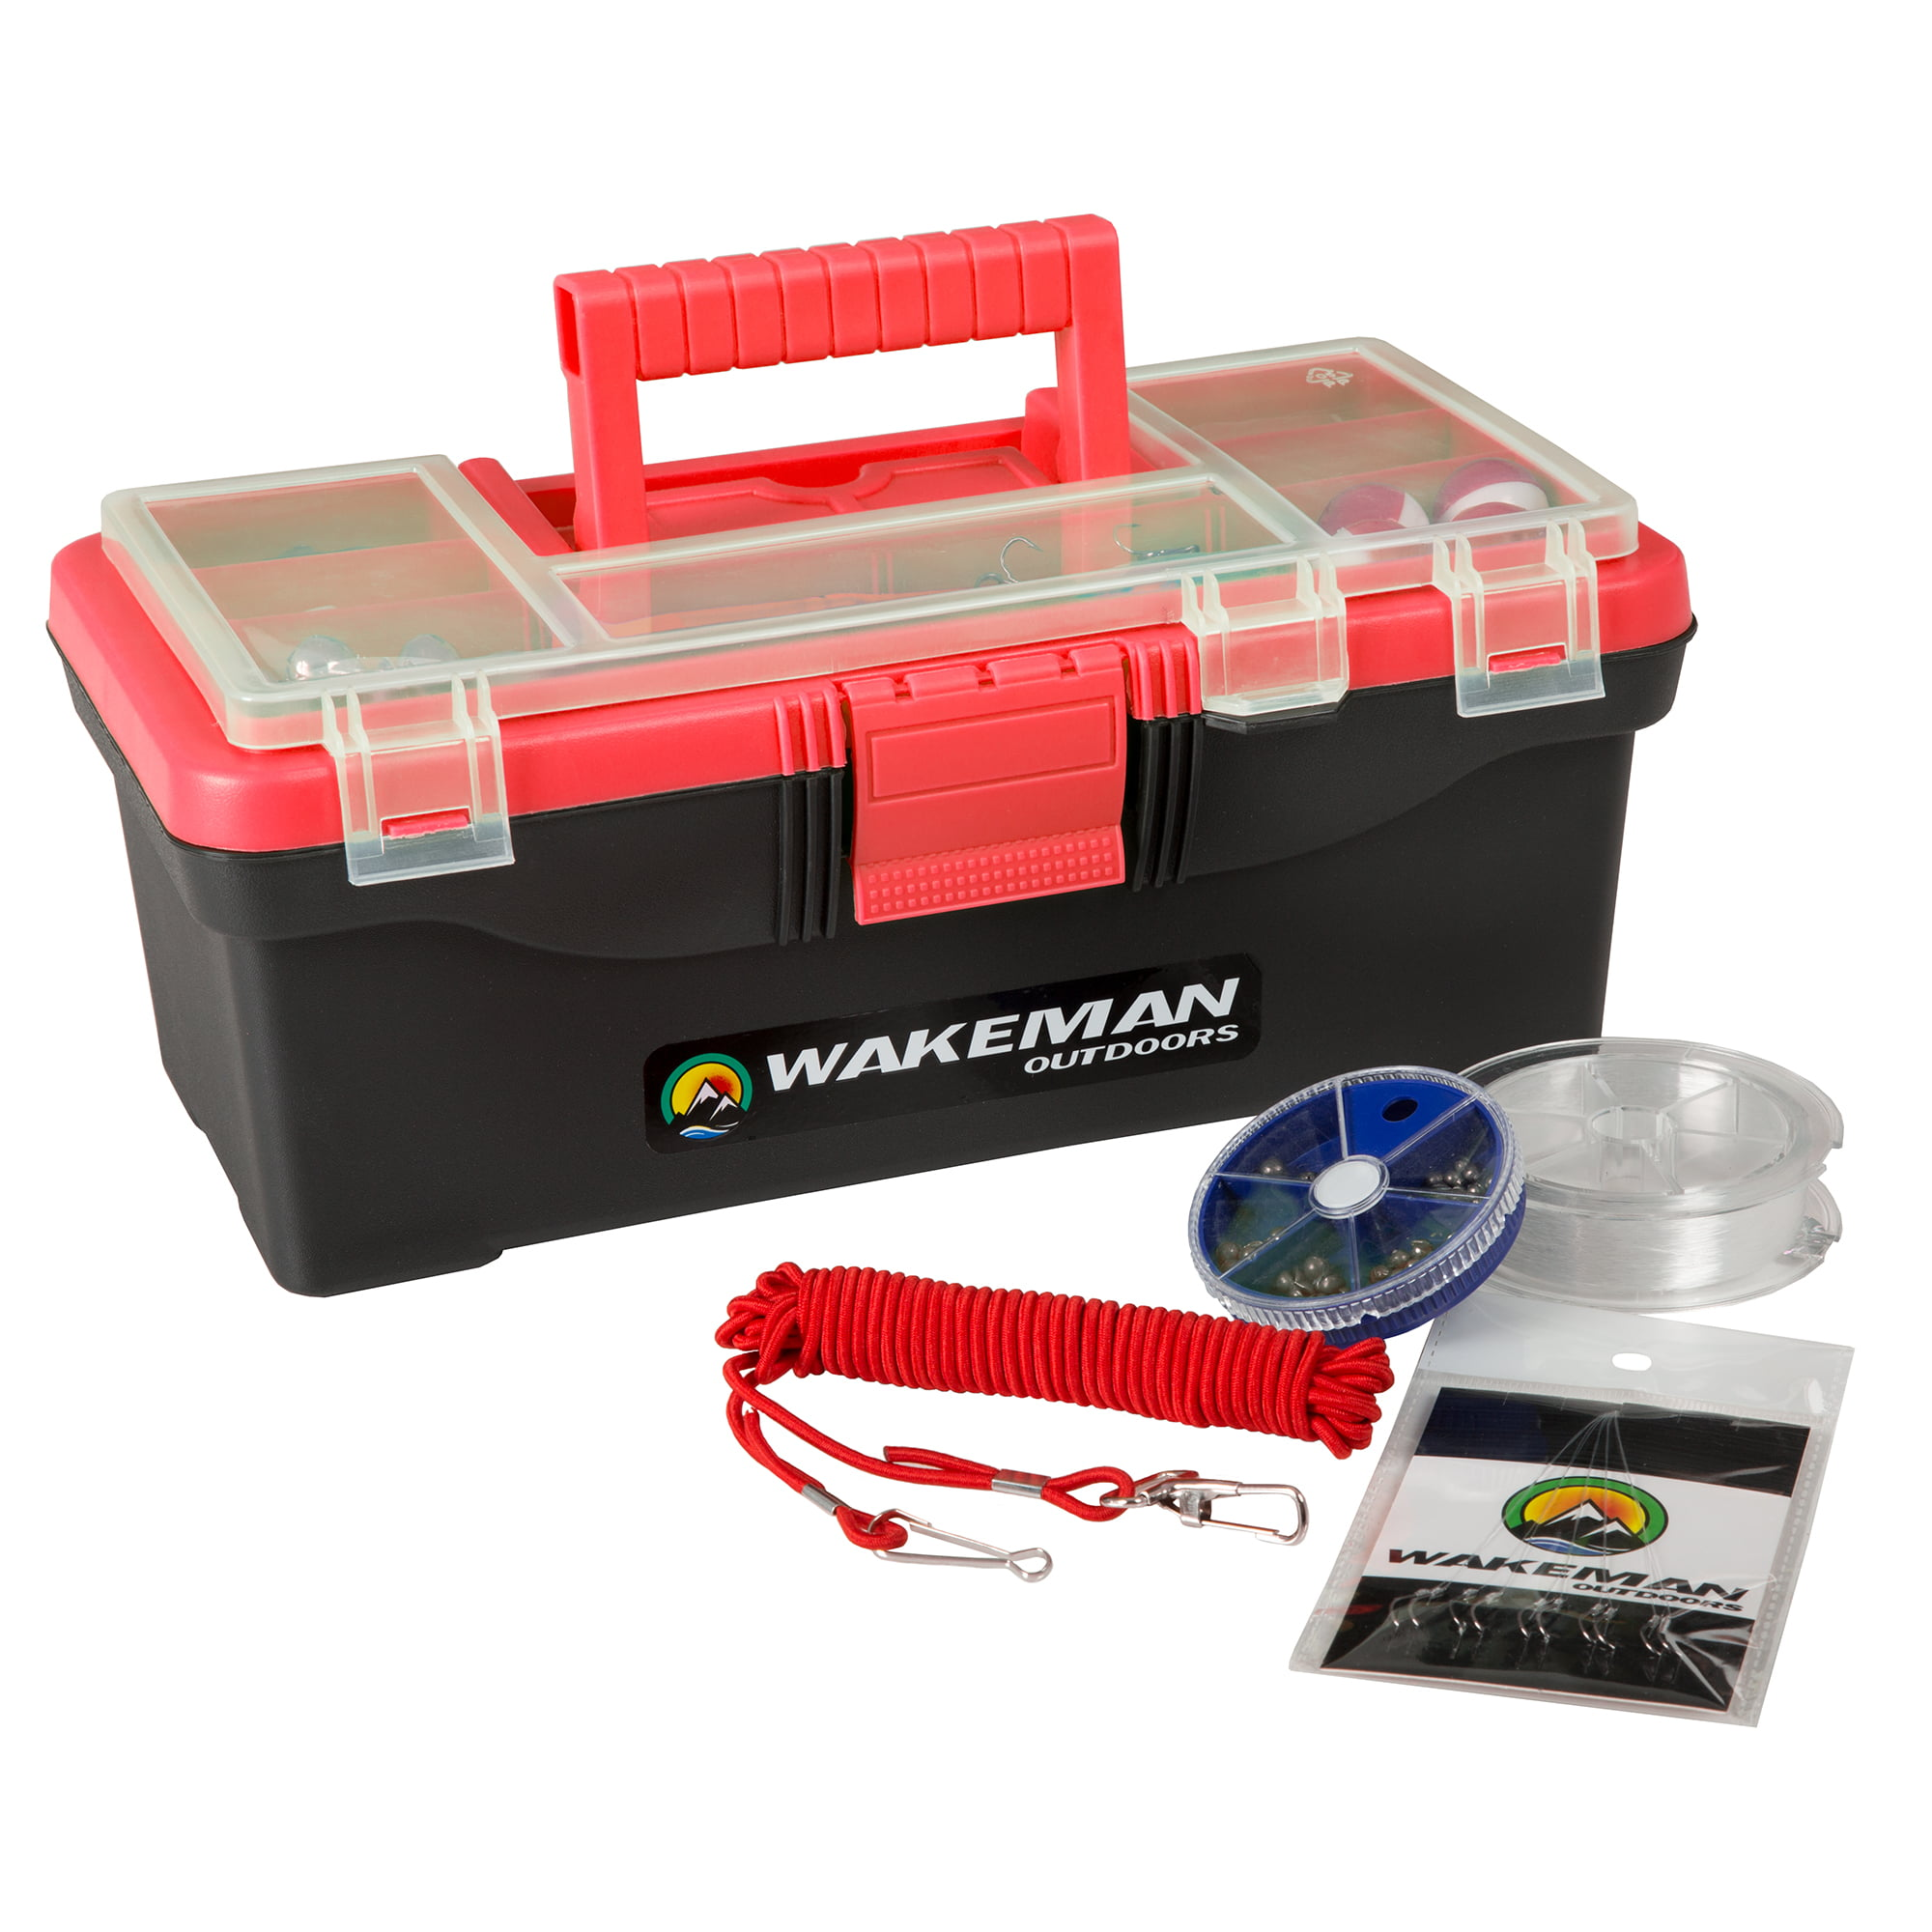 Wakeman Fishing Single Tray Tackle Box 55 Piece Red by Trademark Global